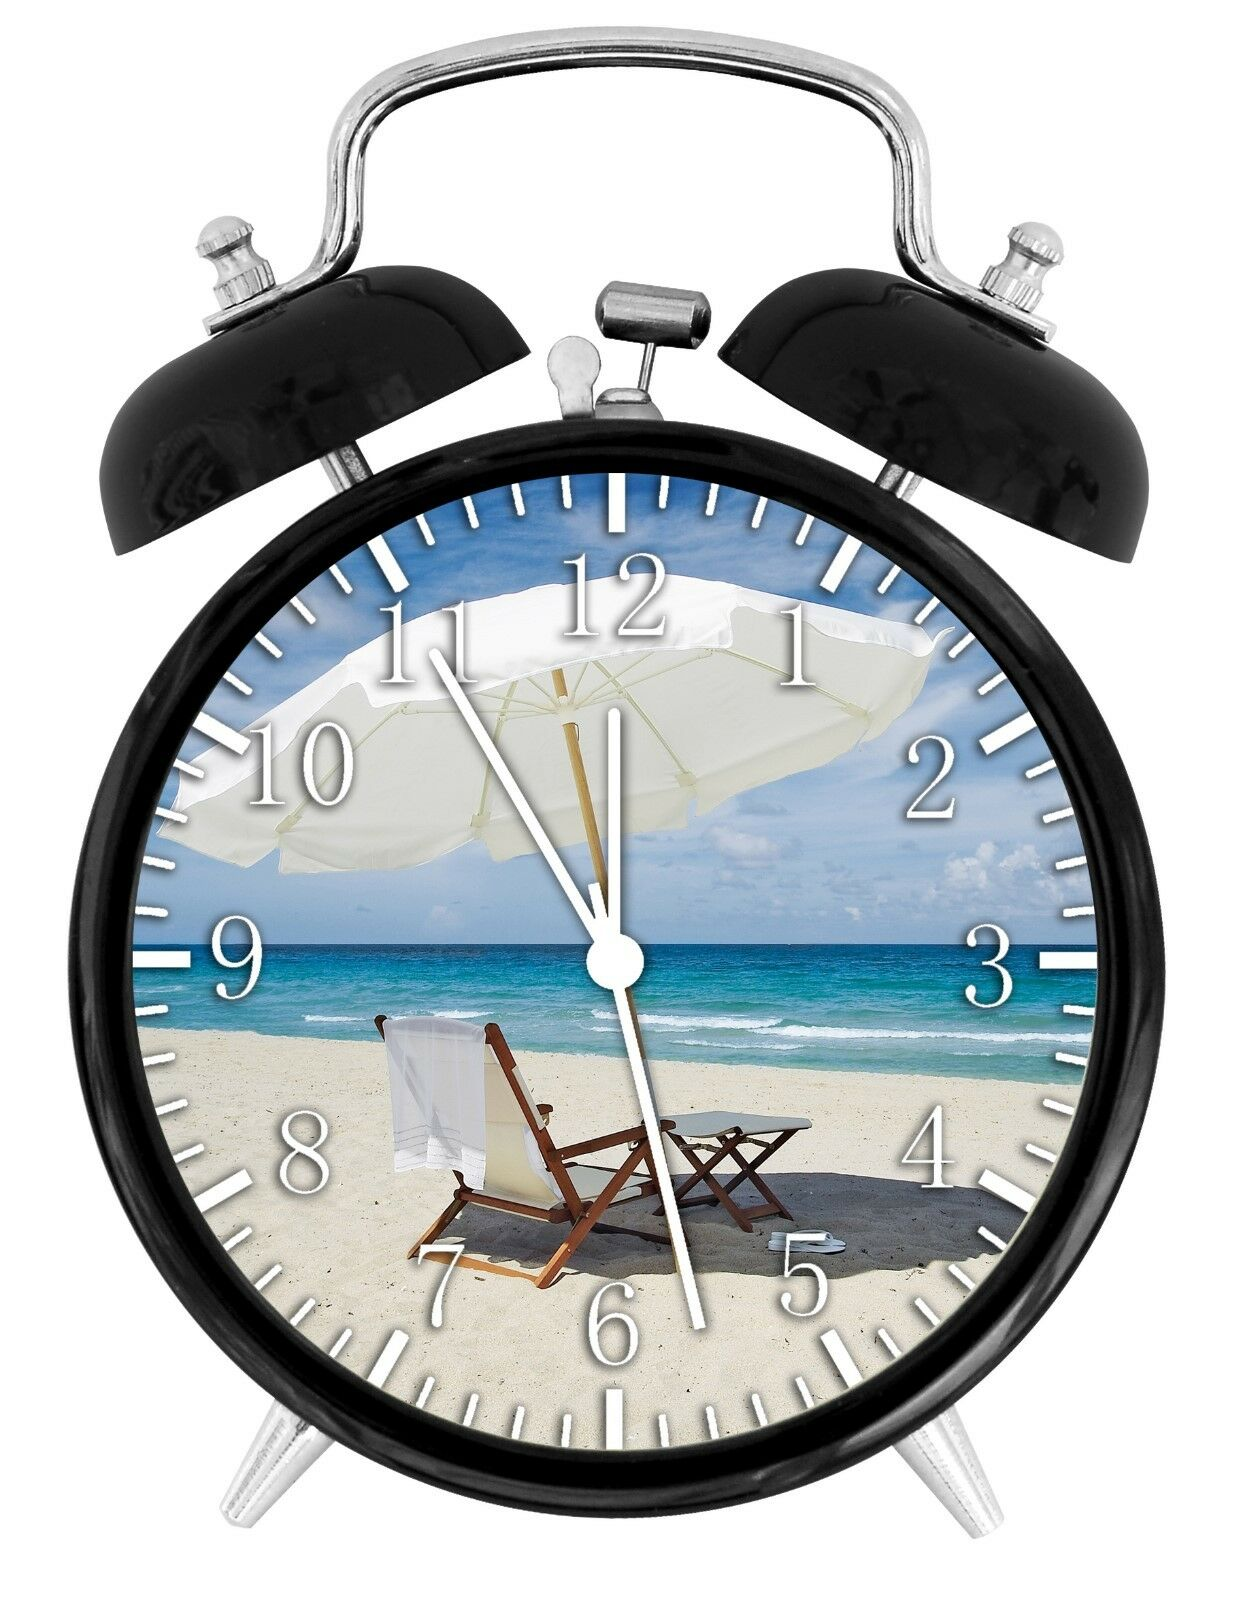 "Beach Scenery Alarm Desk Clock 3.75"" Room Office Decor E61 Will Be a Nice Gift"